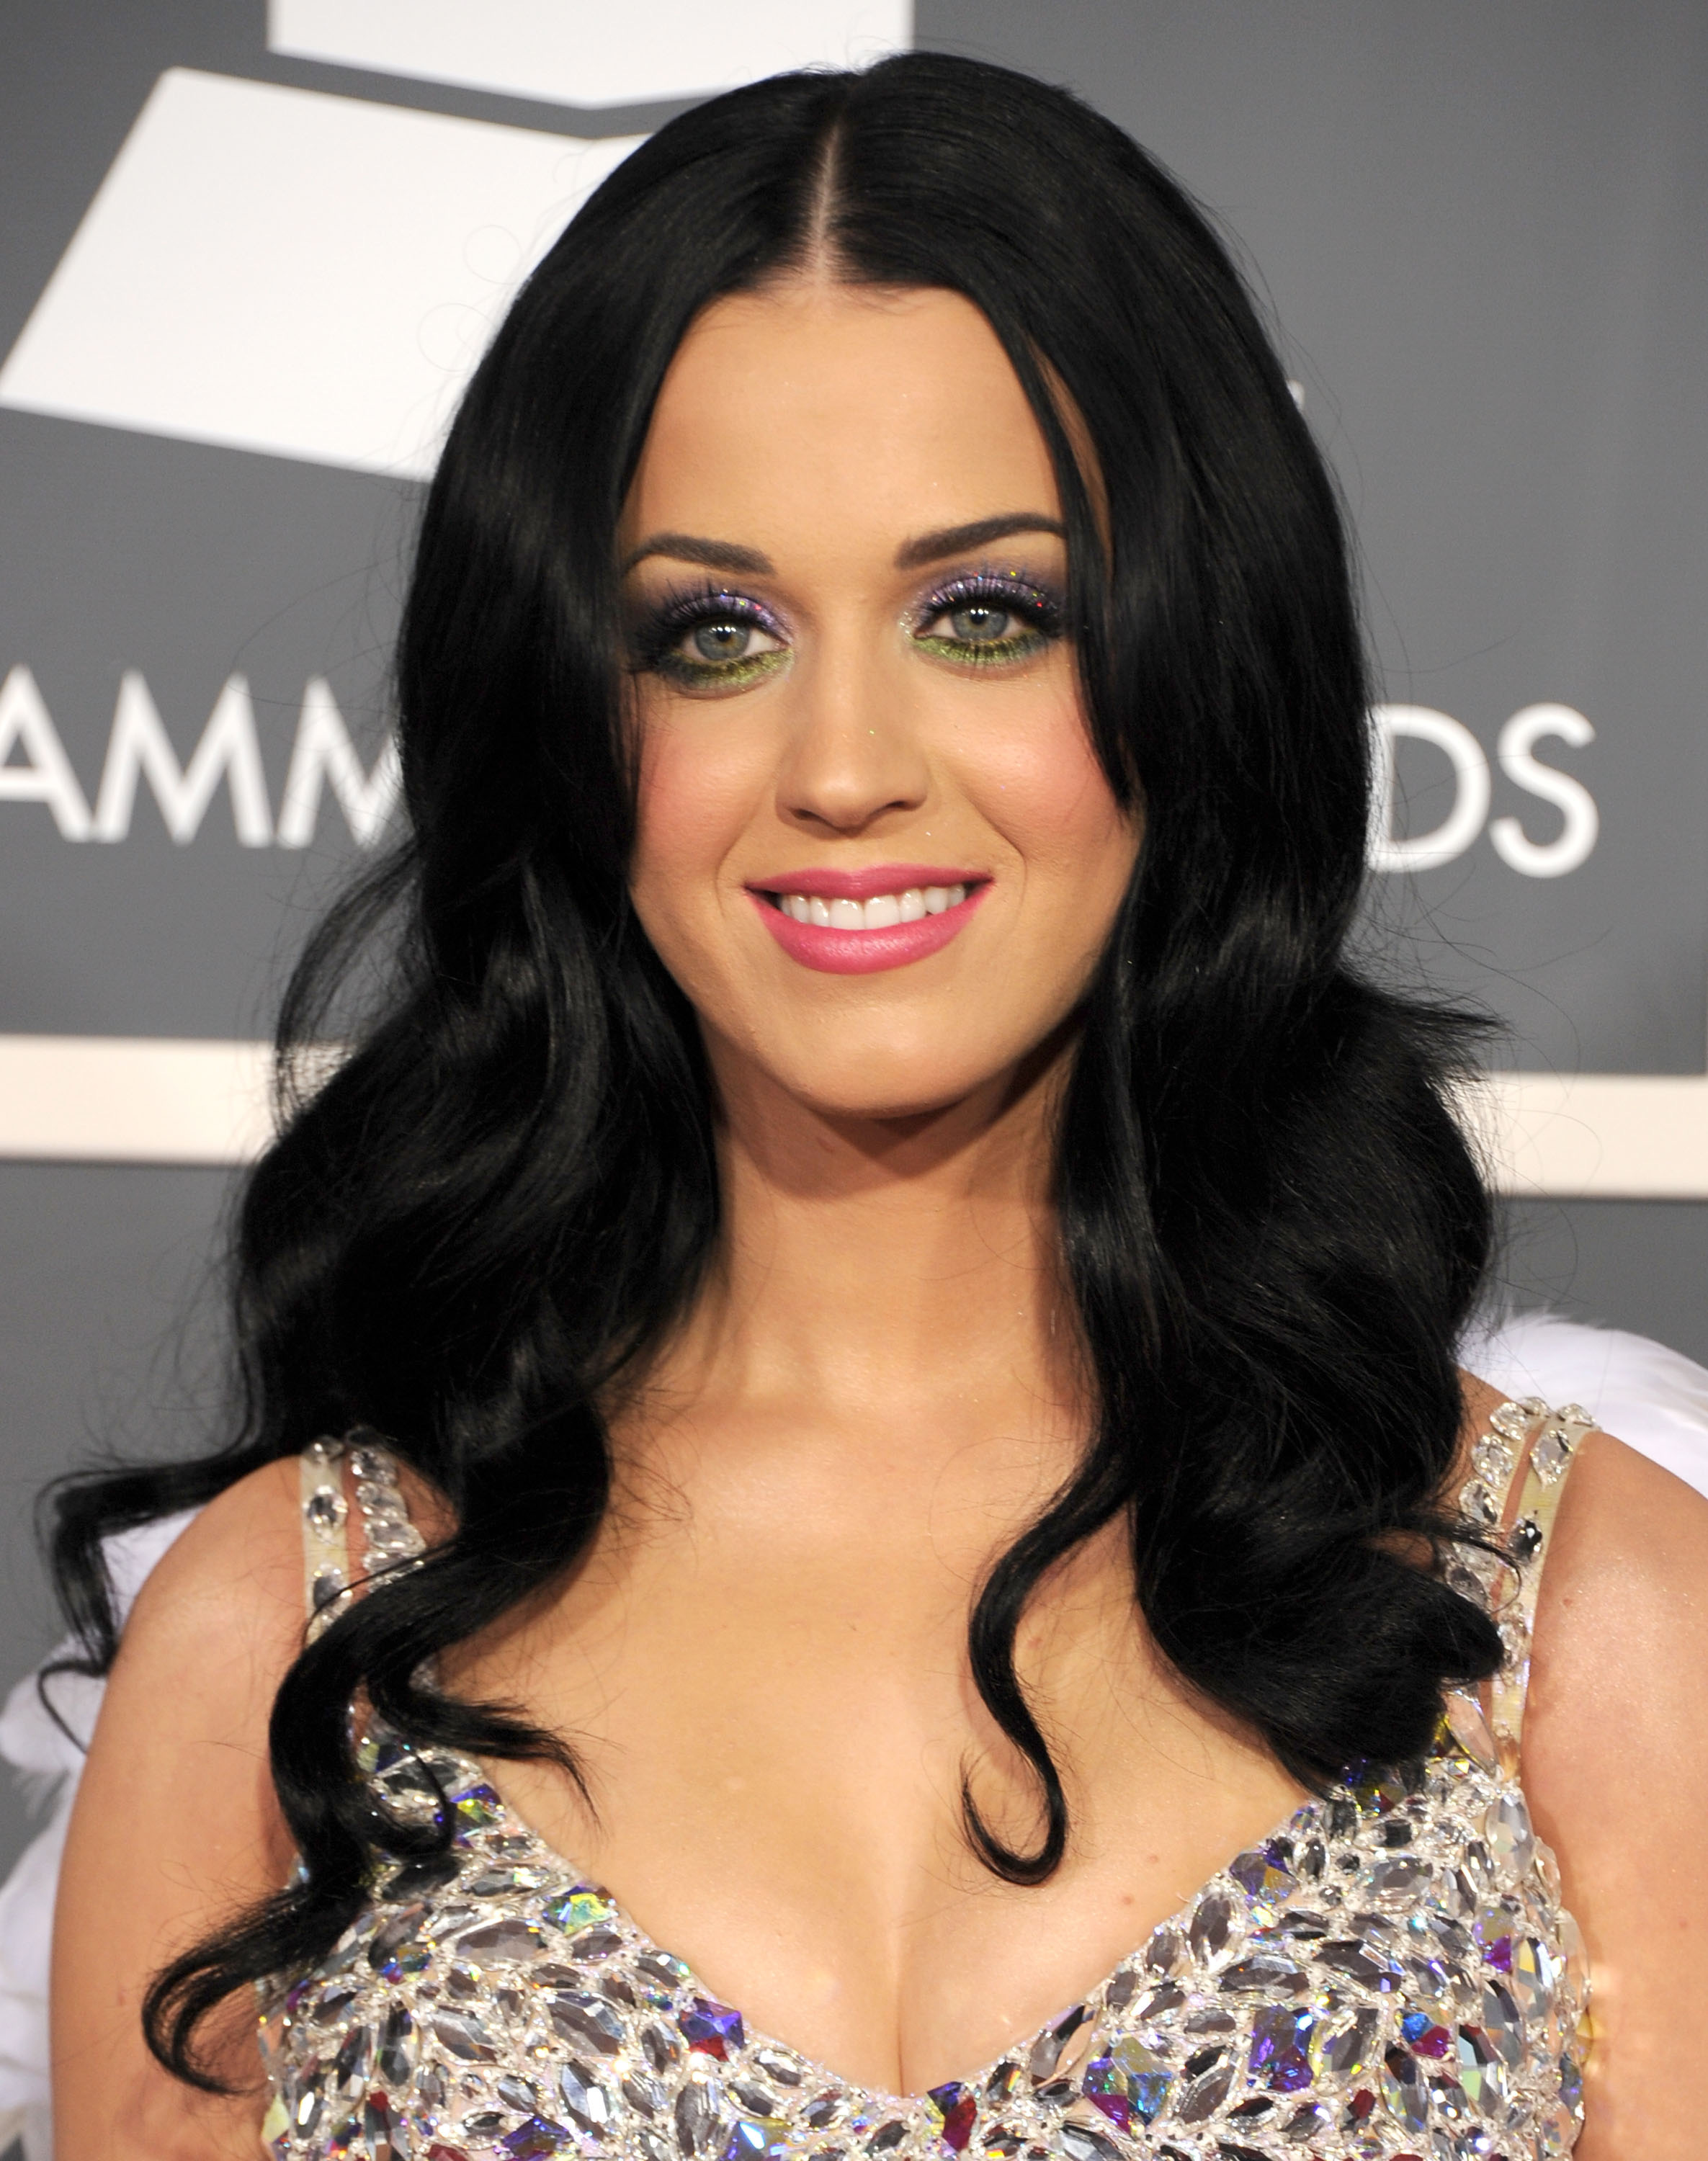 Katy Perry - age: 36